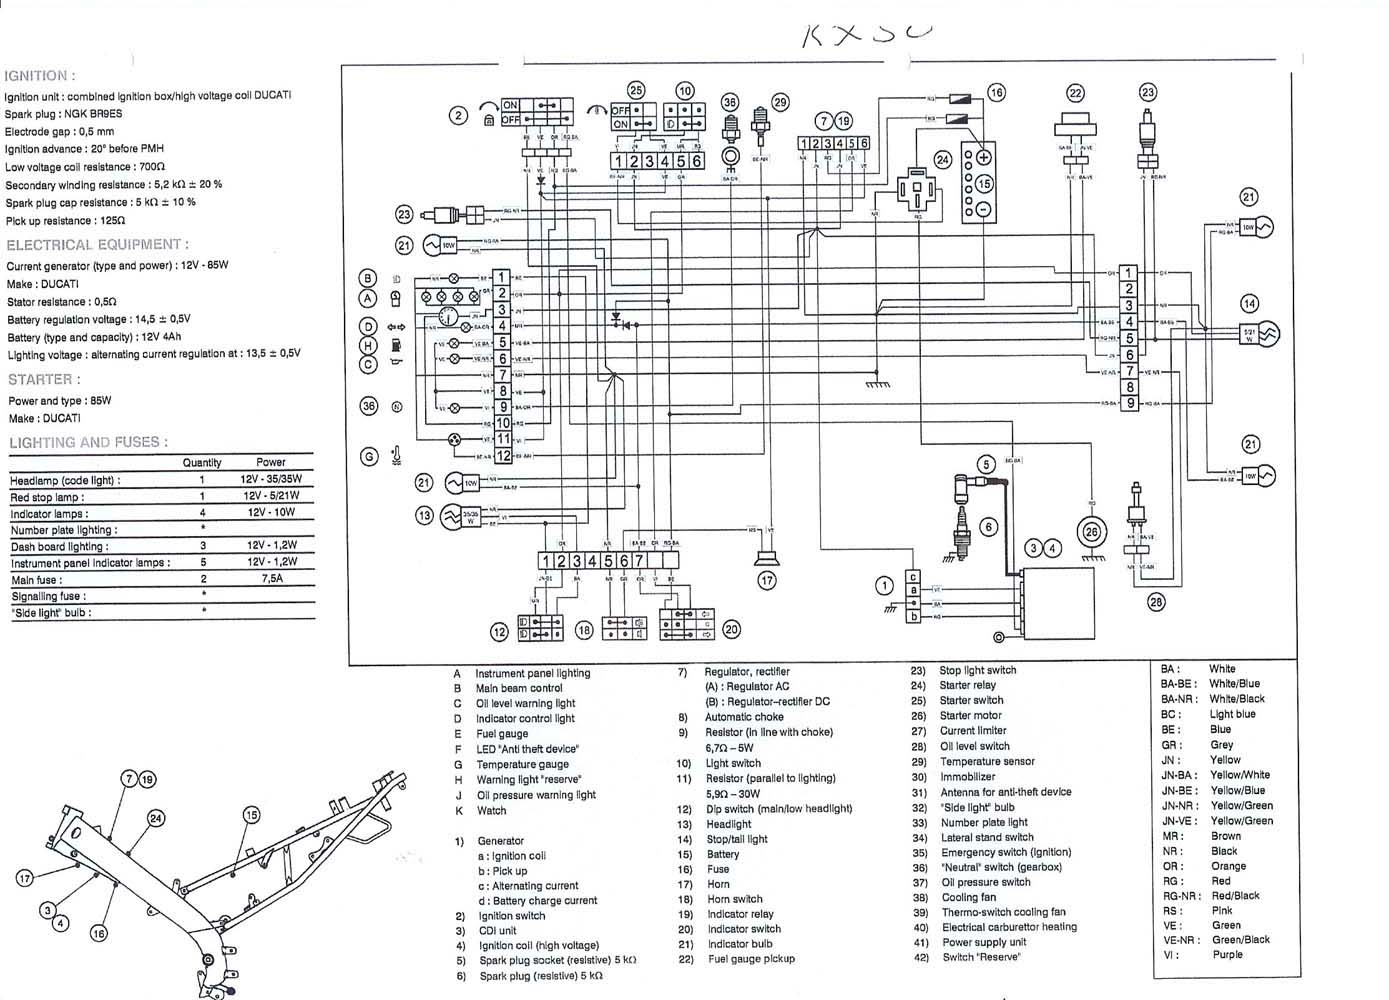 Wiring Diagram Motorhispania